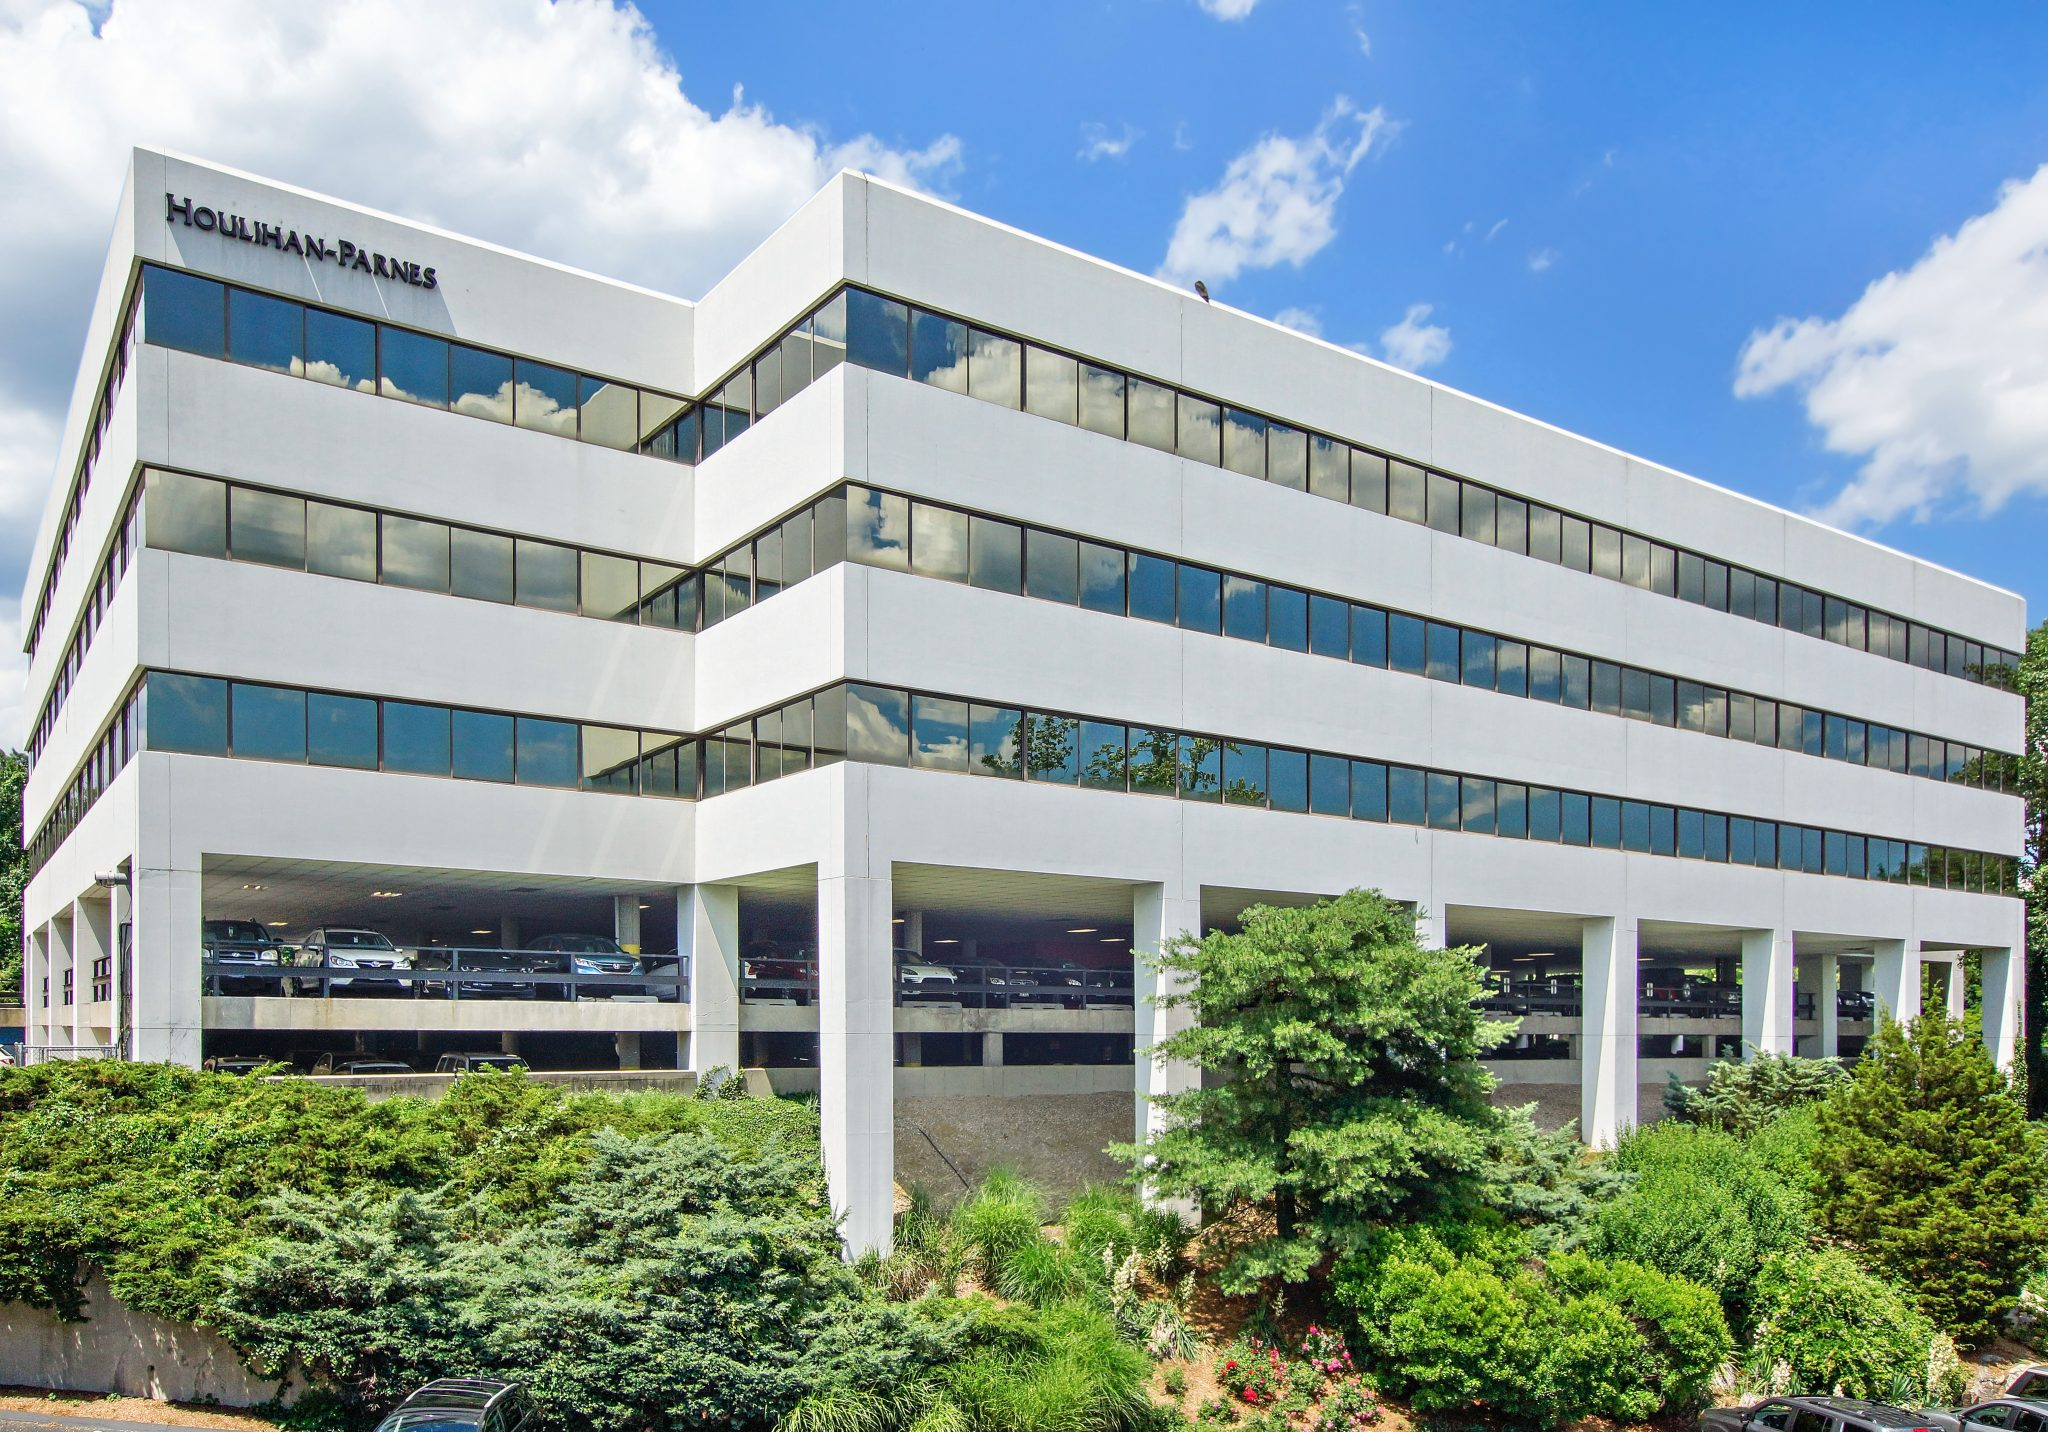 4 West Red Oak Lane – White Plains, NY 10604 – 4,103 sq. ft.